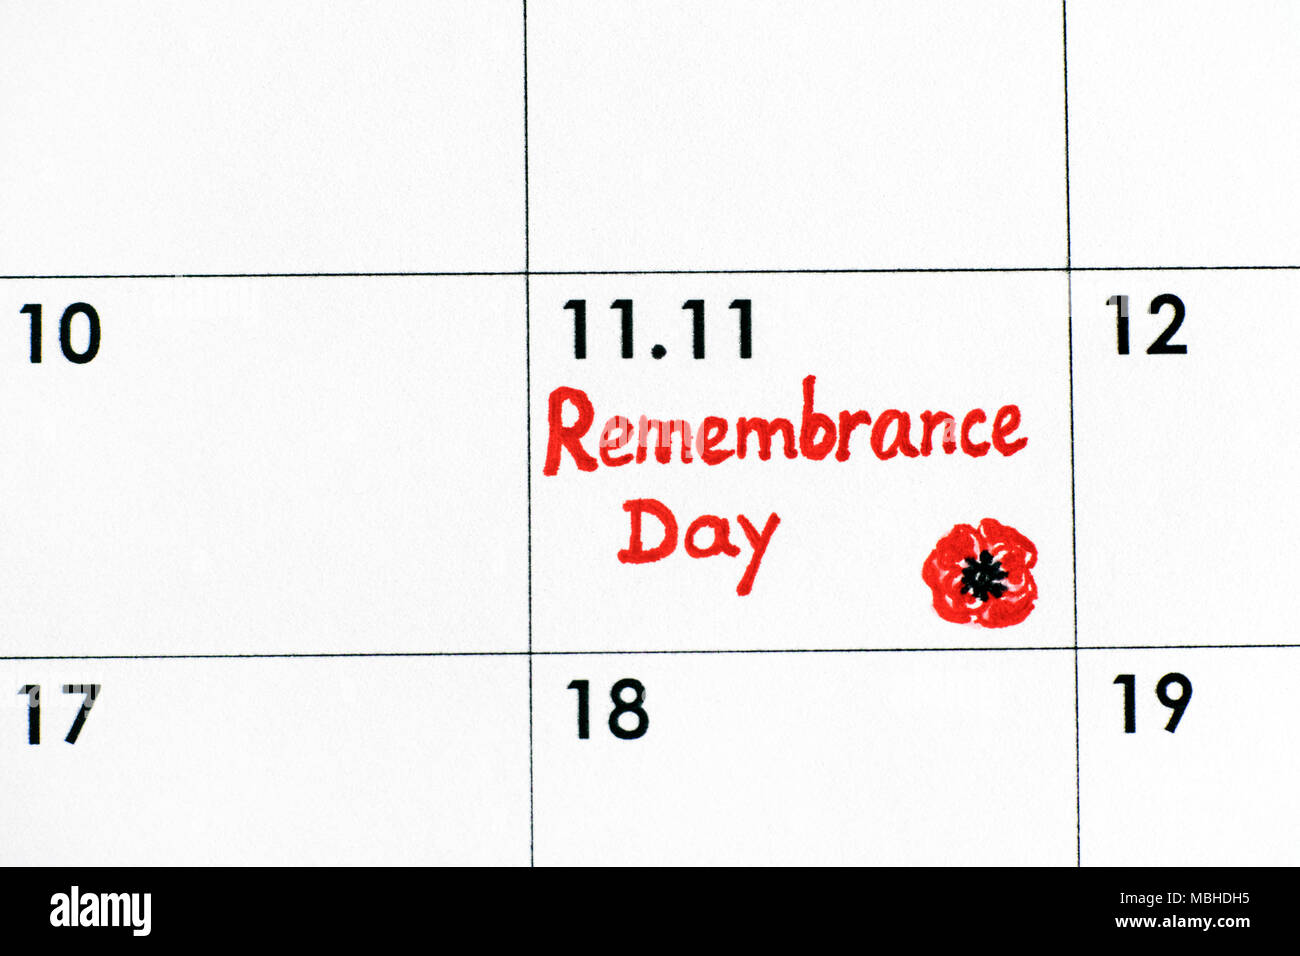 Reminder Remembrance Day in calendar. Close-up. - Stock Image